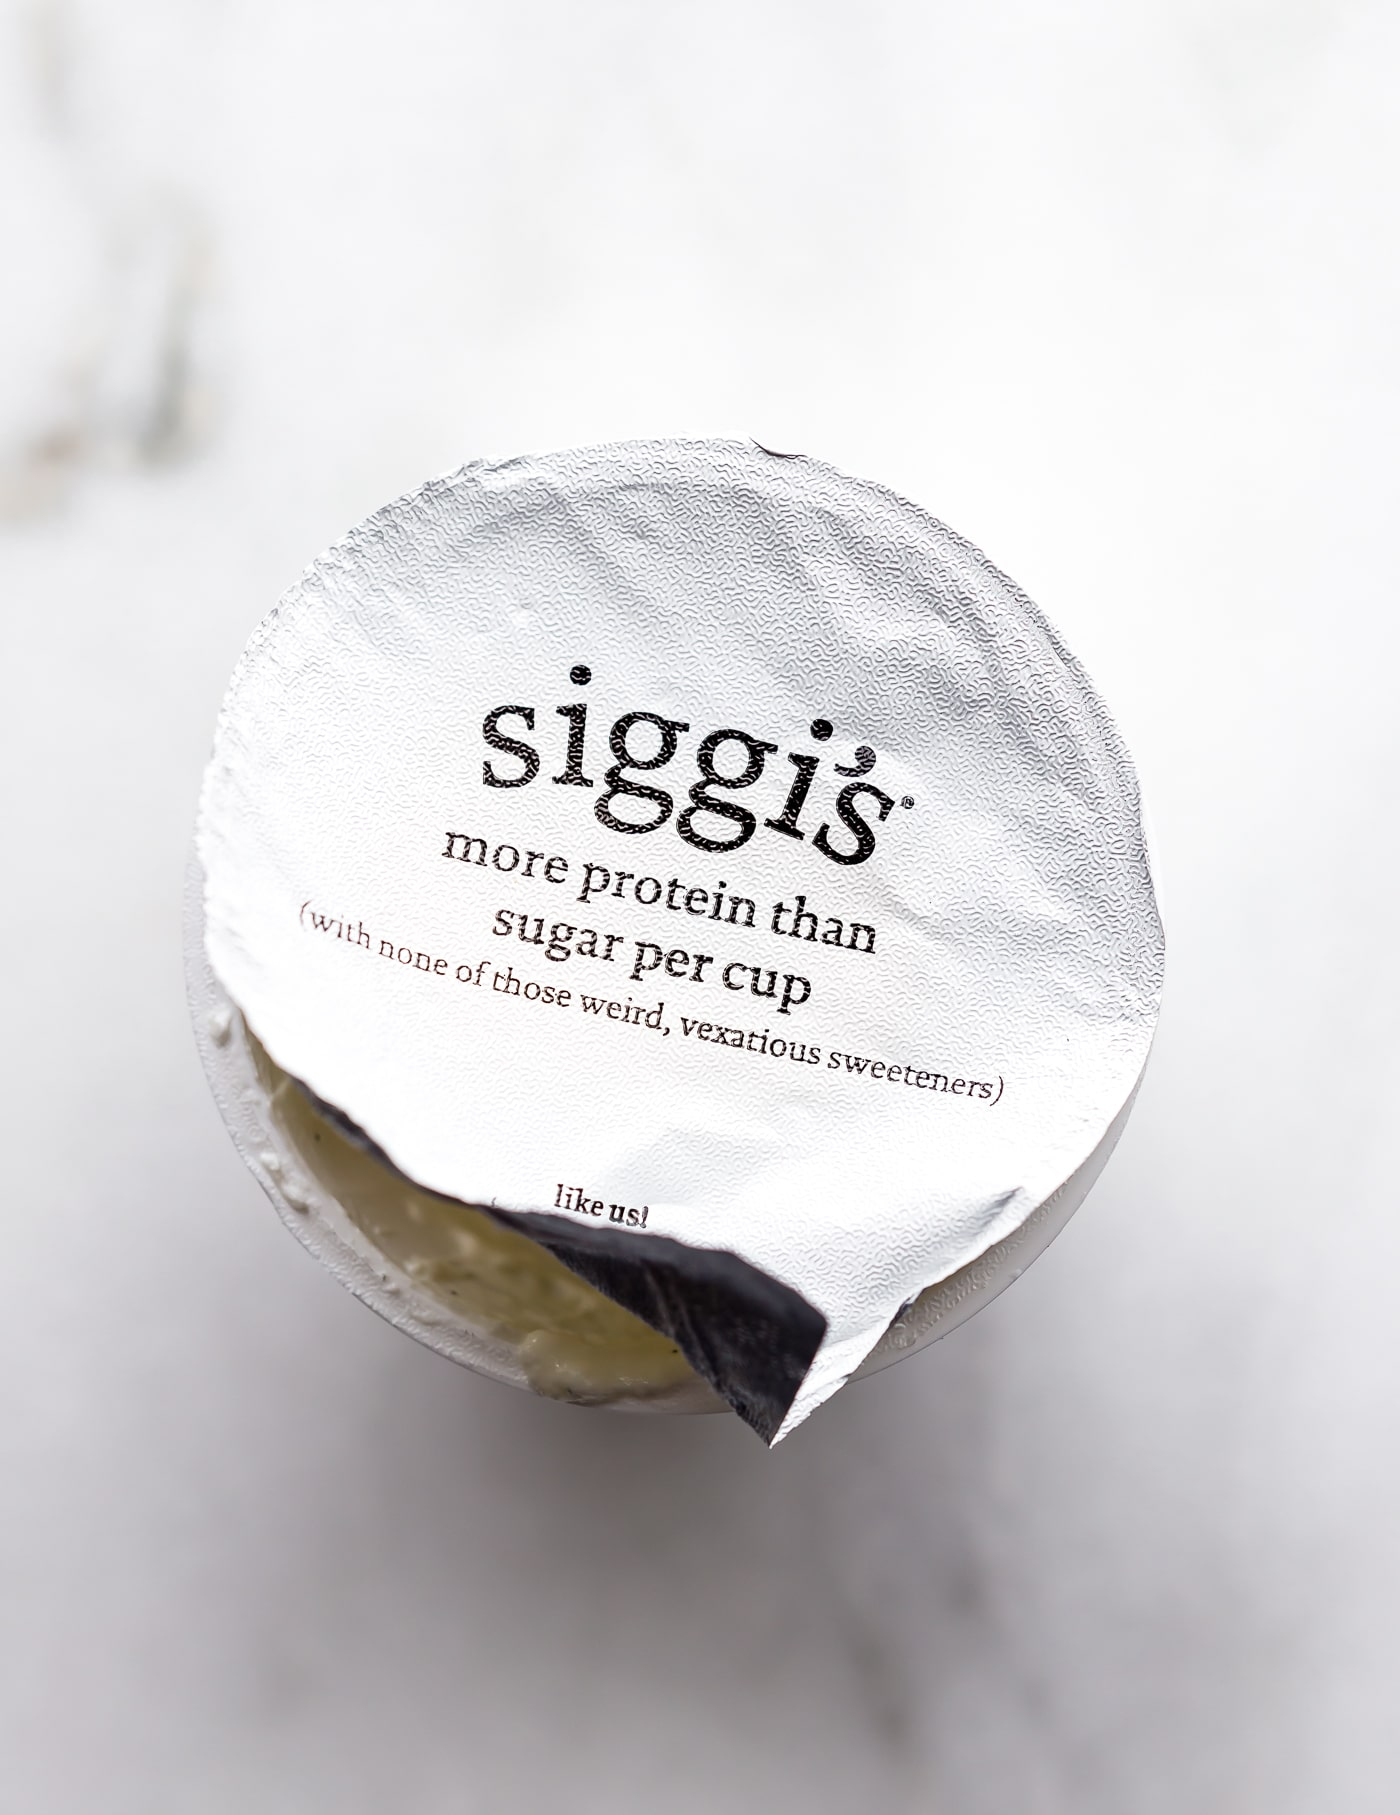 Siggi's protein packed yogurt